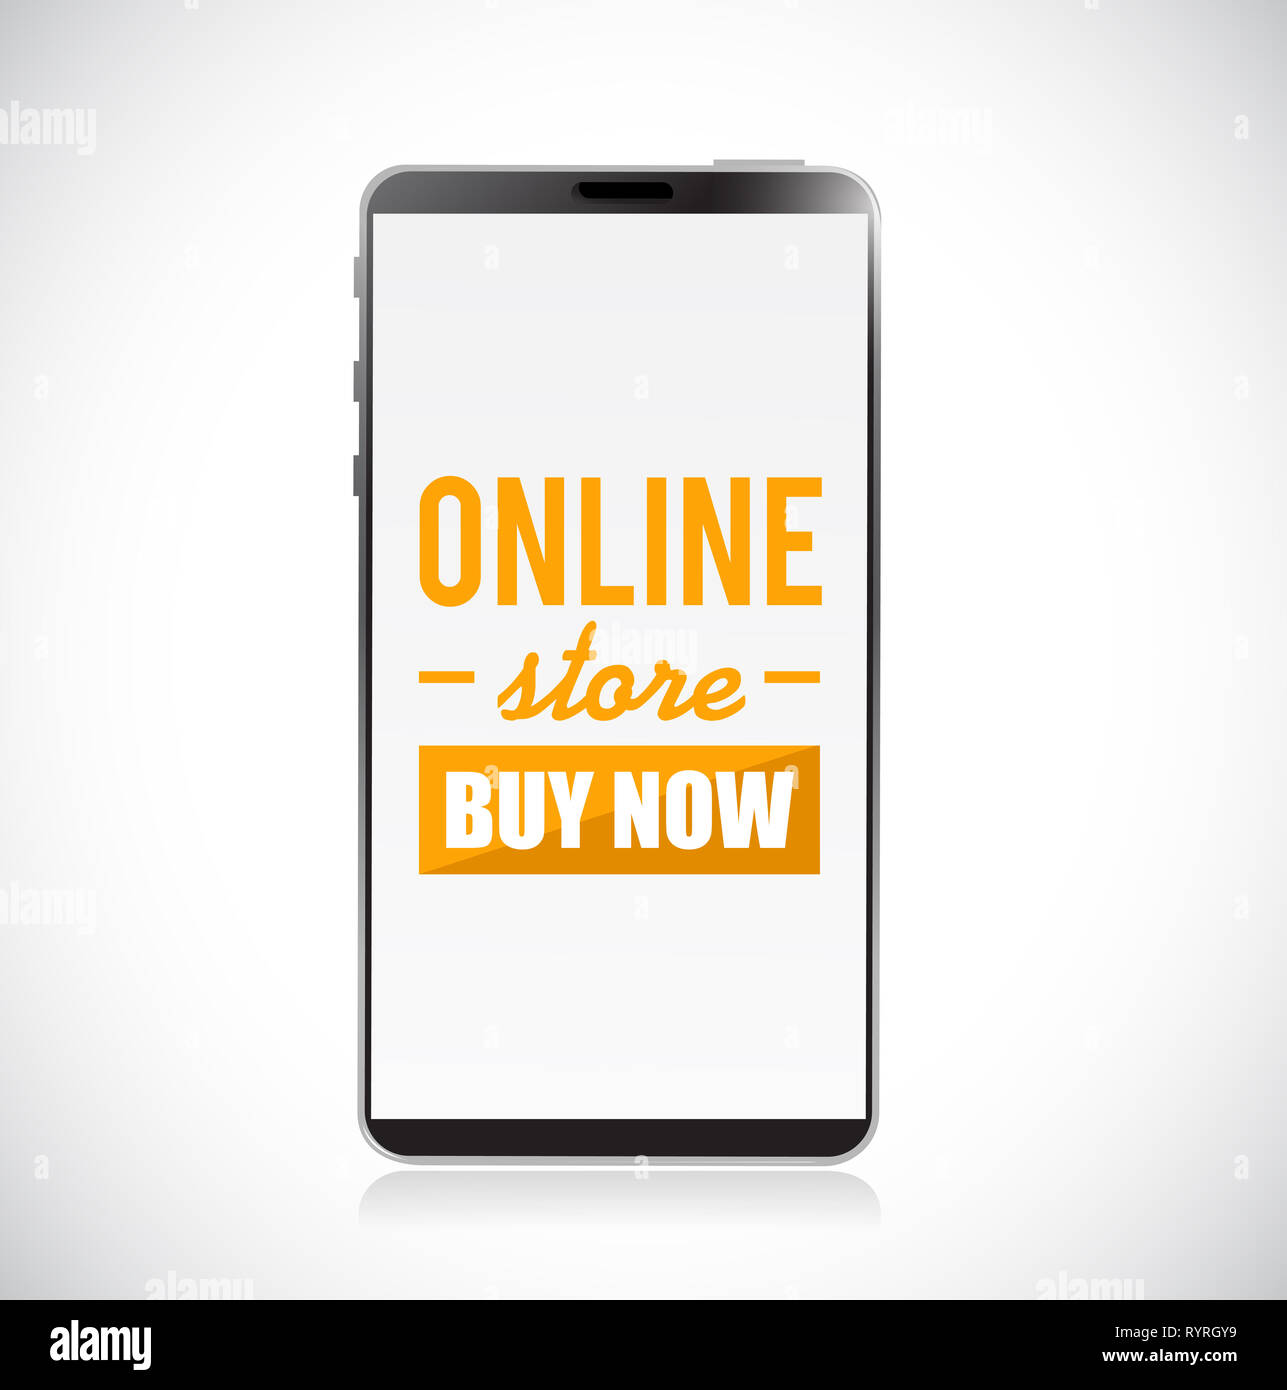 online store buy now sign on a mobile phone concept illustration over a white background Stock Photo